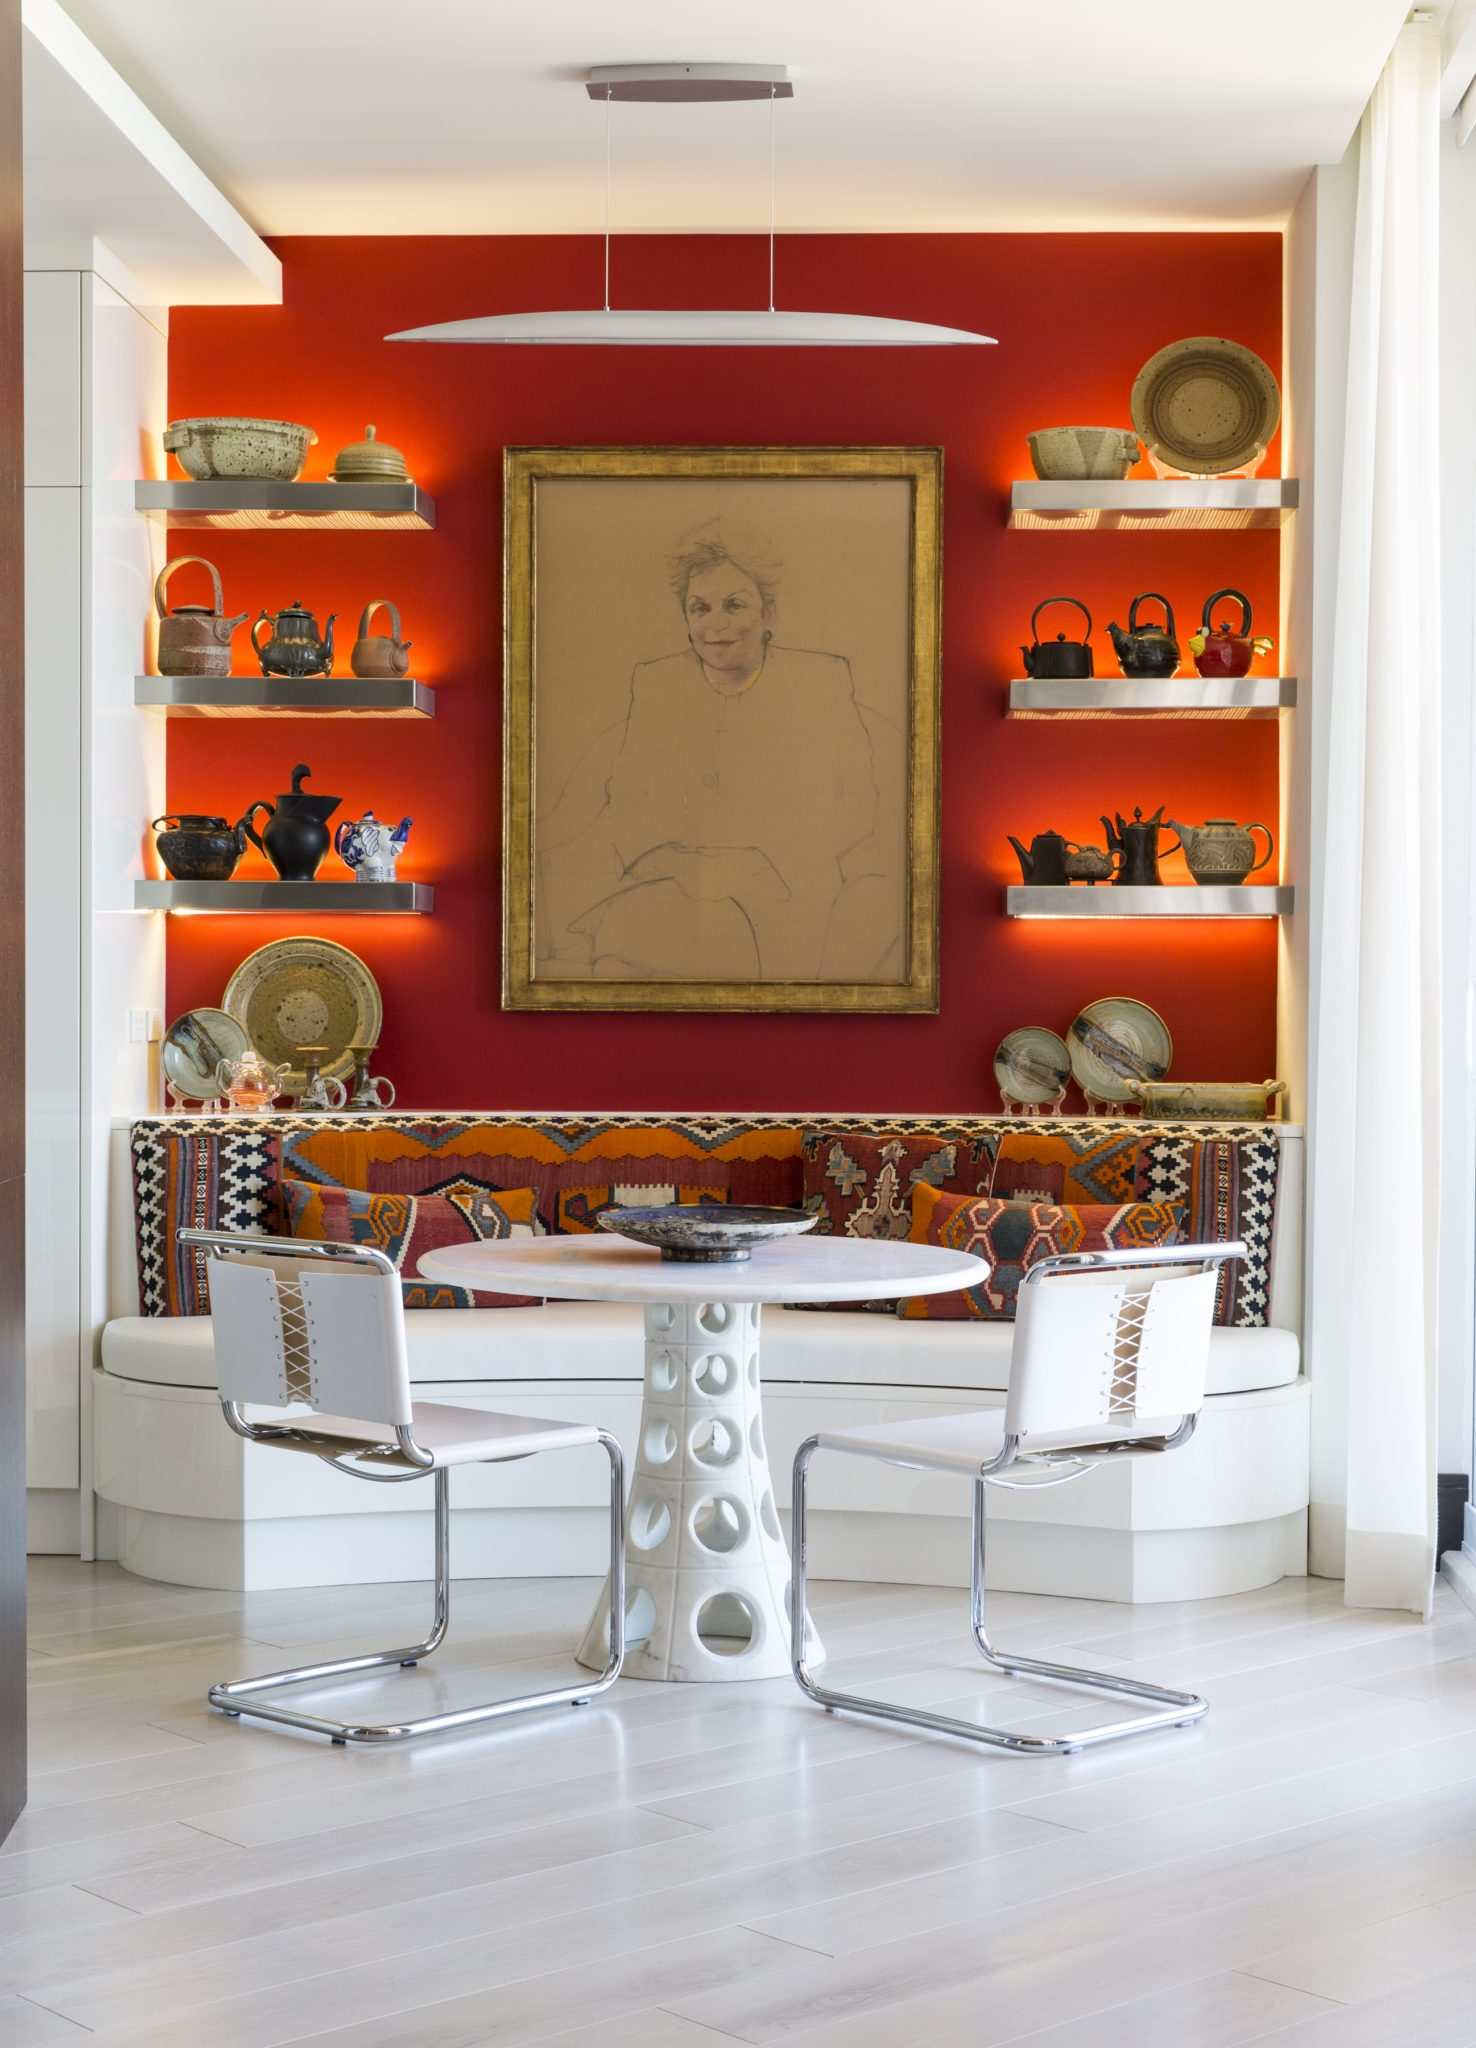 The owner's portrait presides over the breakfast area's banquette. By Taylor & Taylor